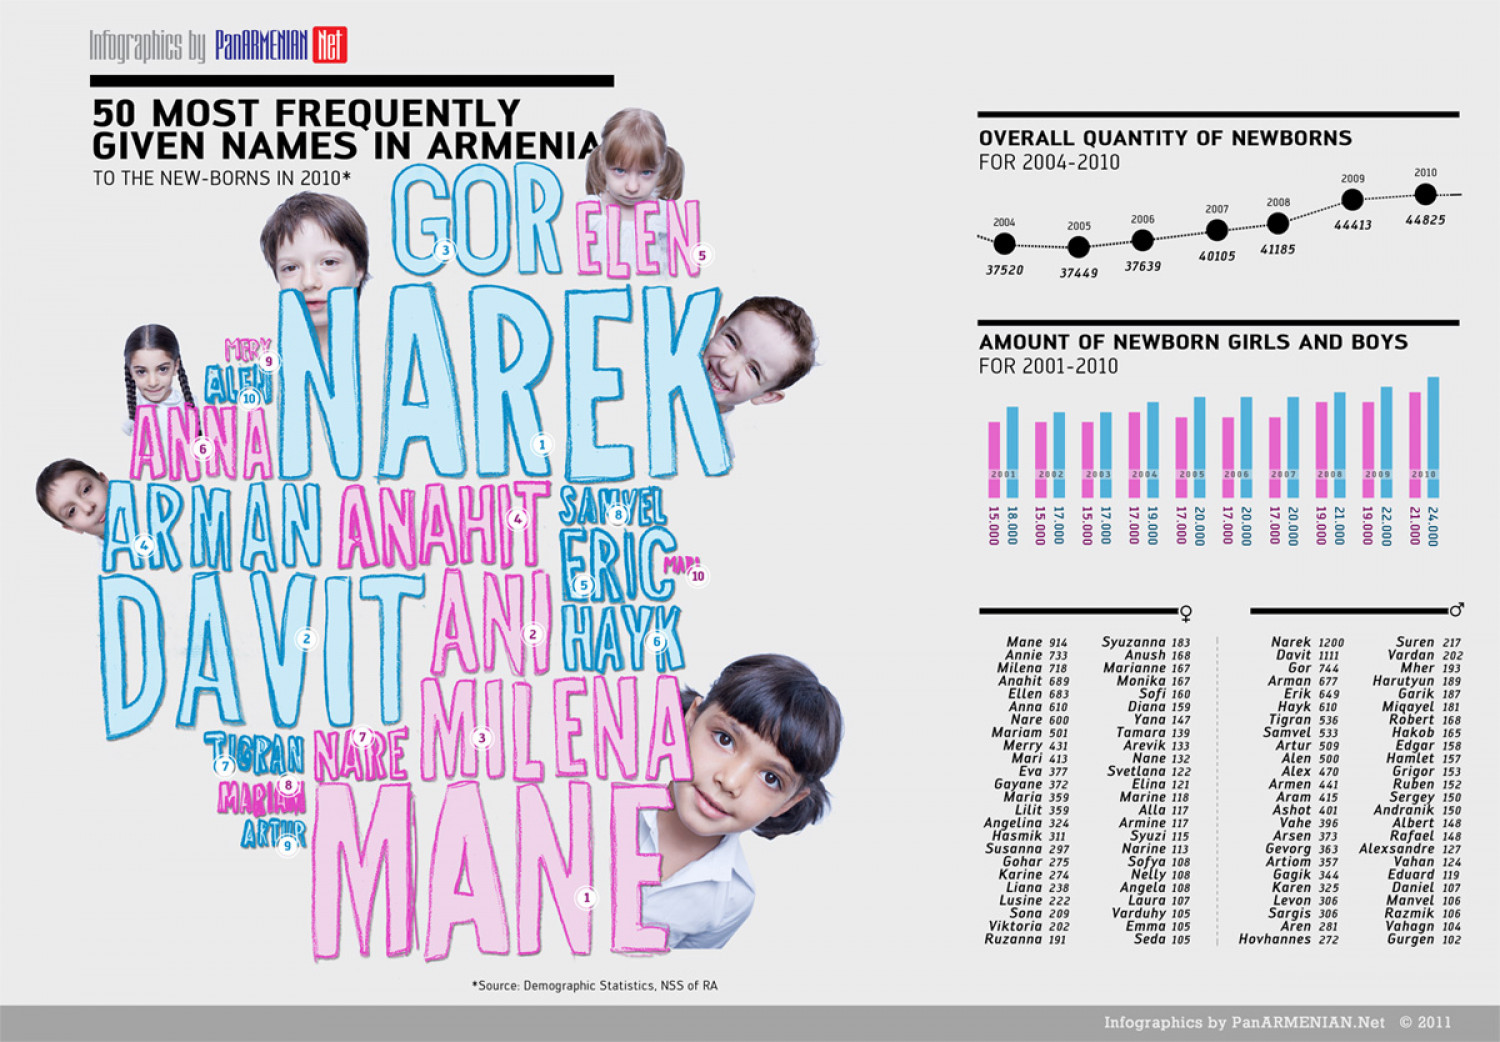 50 Most Frequently Given Names in Armenia  Infographic